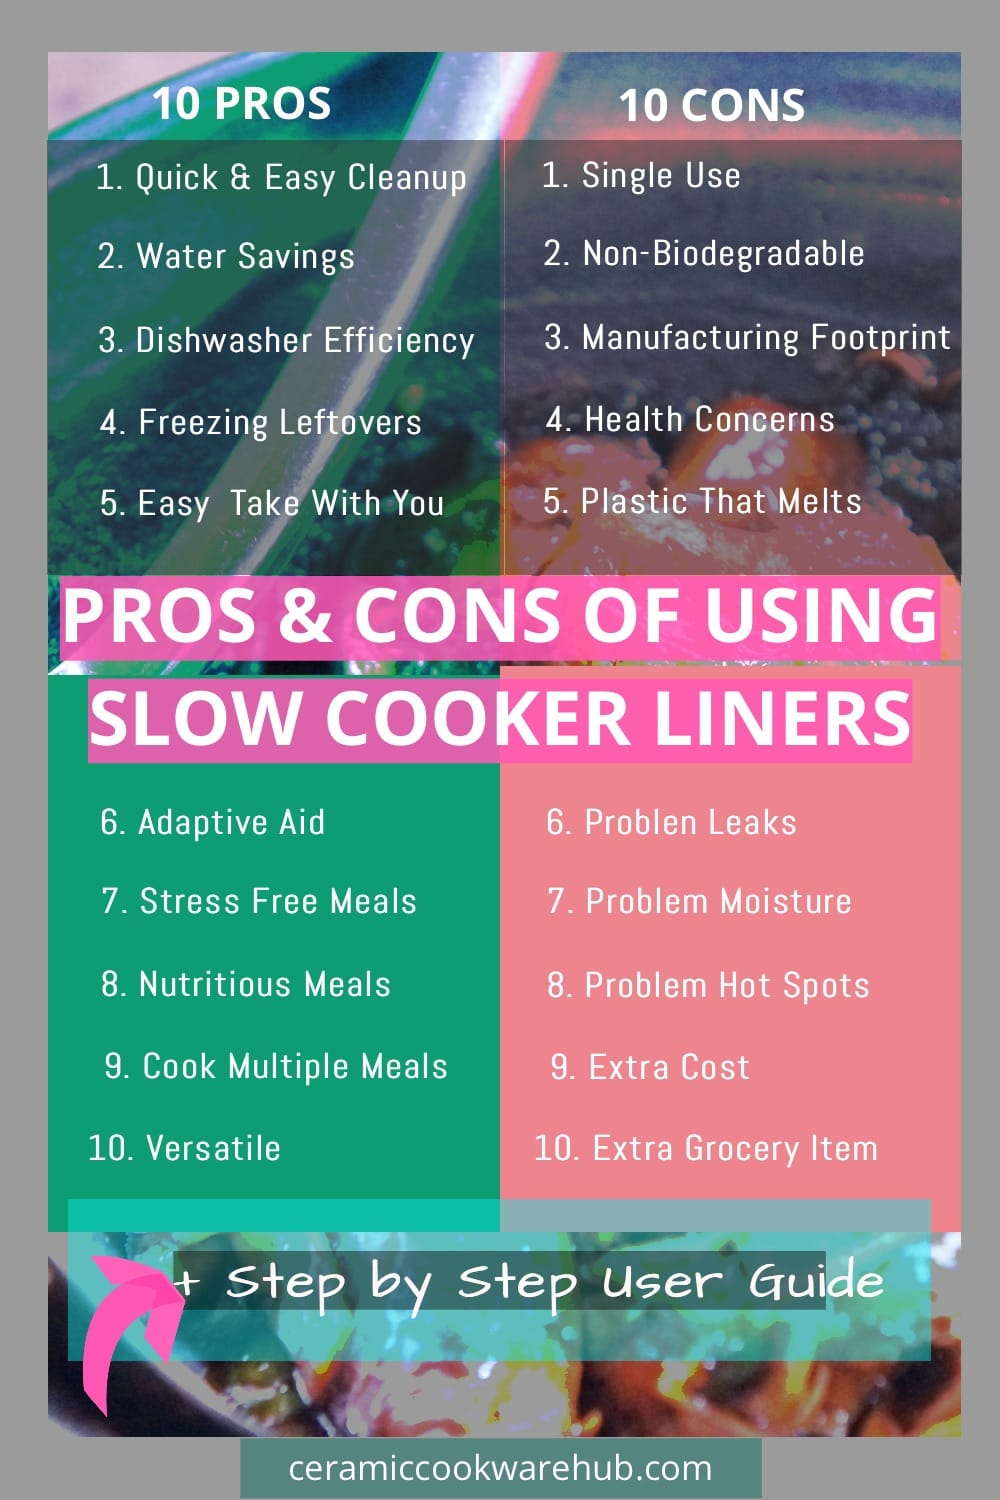 10 Pros and Cons of Slow Cooker Liners. What to know before you buy slow cooker liners, aka crock pot liners. Weigh up the conveniences vs the costs. Plus step by step on how to use slow cooker liners, which are plastic bags that fit inside, between the food and the pot.